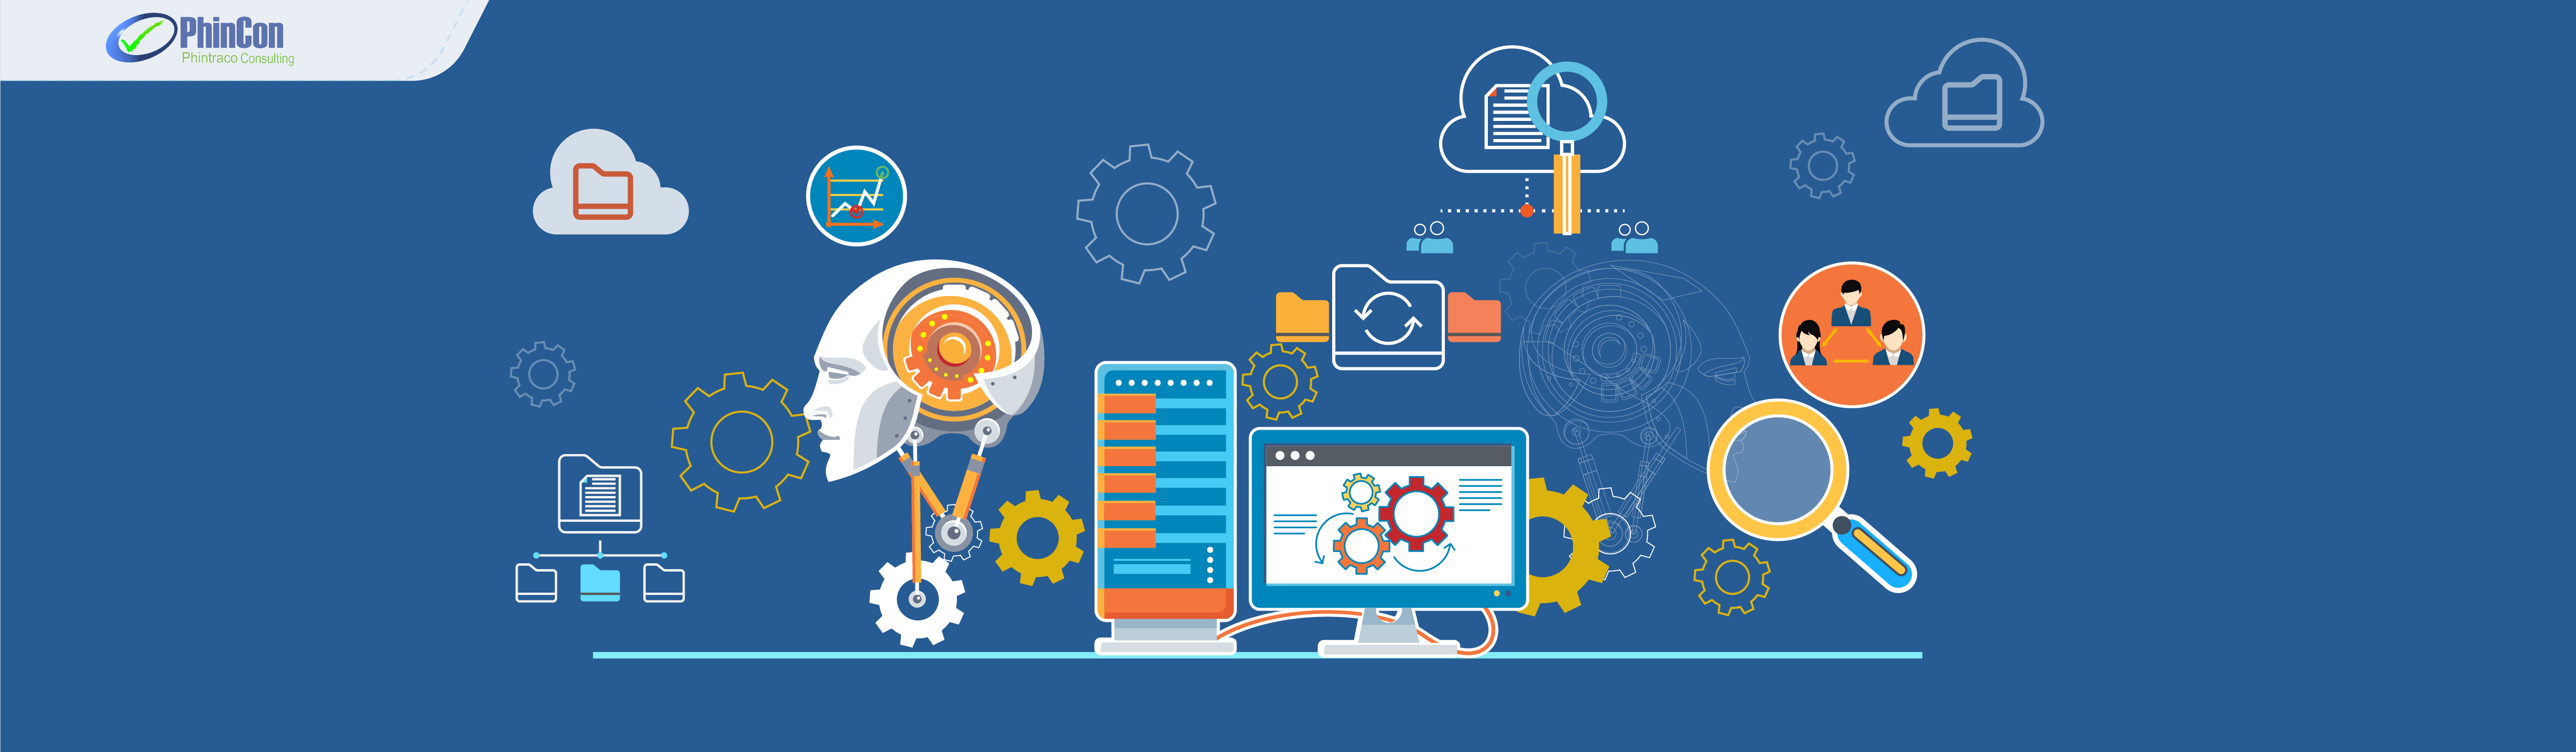 Essential Technology Solutions for Modern Companies